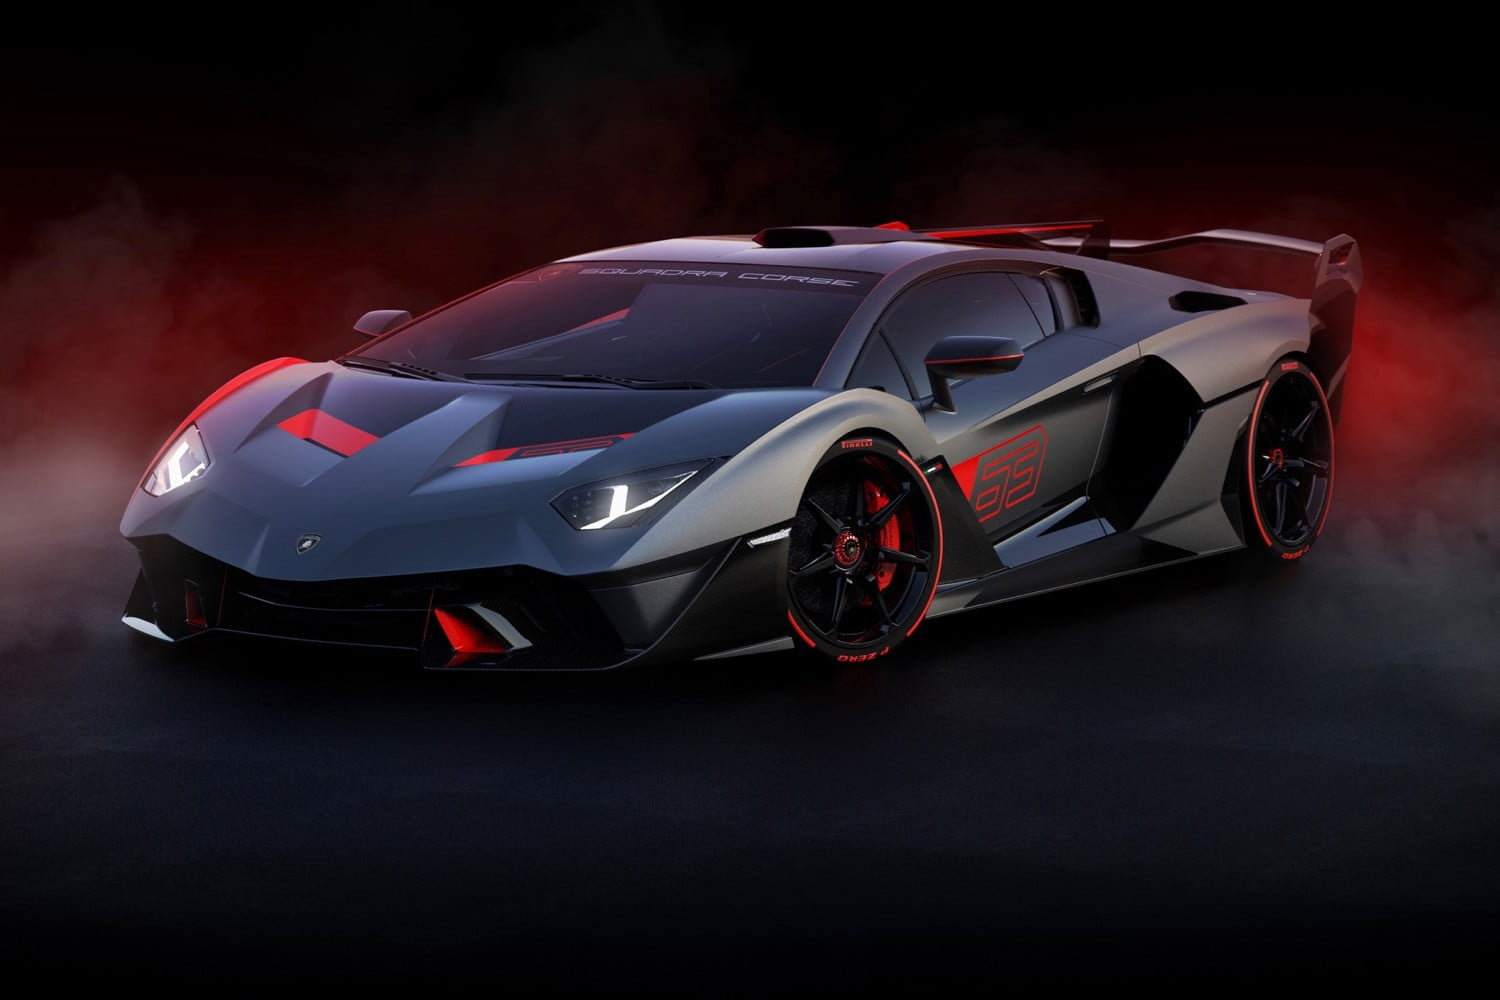 Lamborghini Sc18 Is A One Off Supercar Inspired By Racing Digital